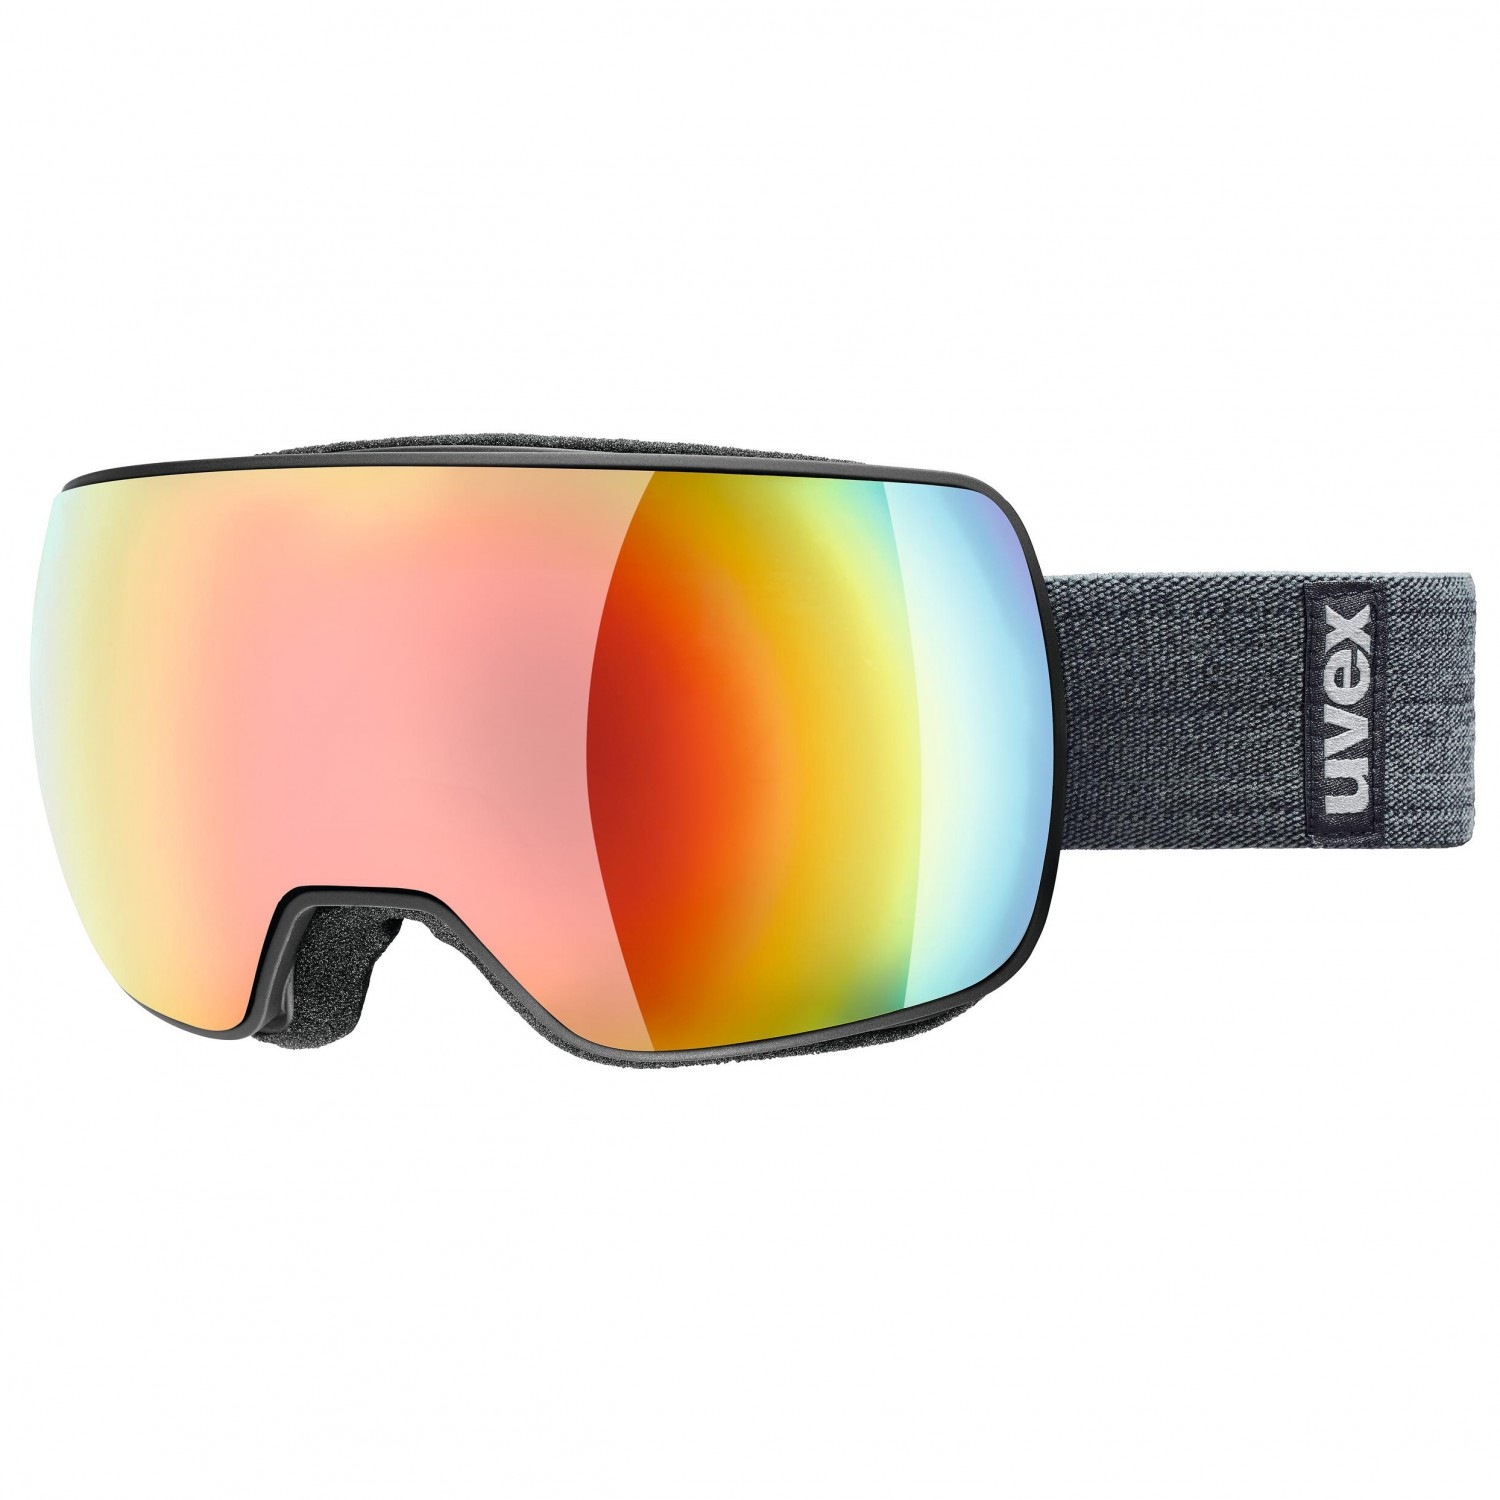 d31bbb9ee961 Uvex Compact Fullmirror S3 - Ski Goggles